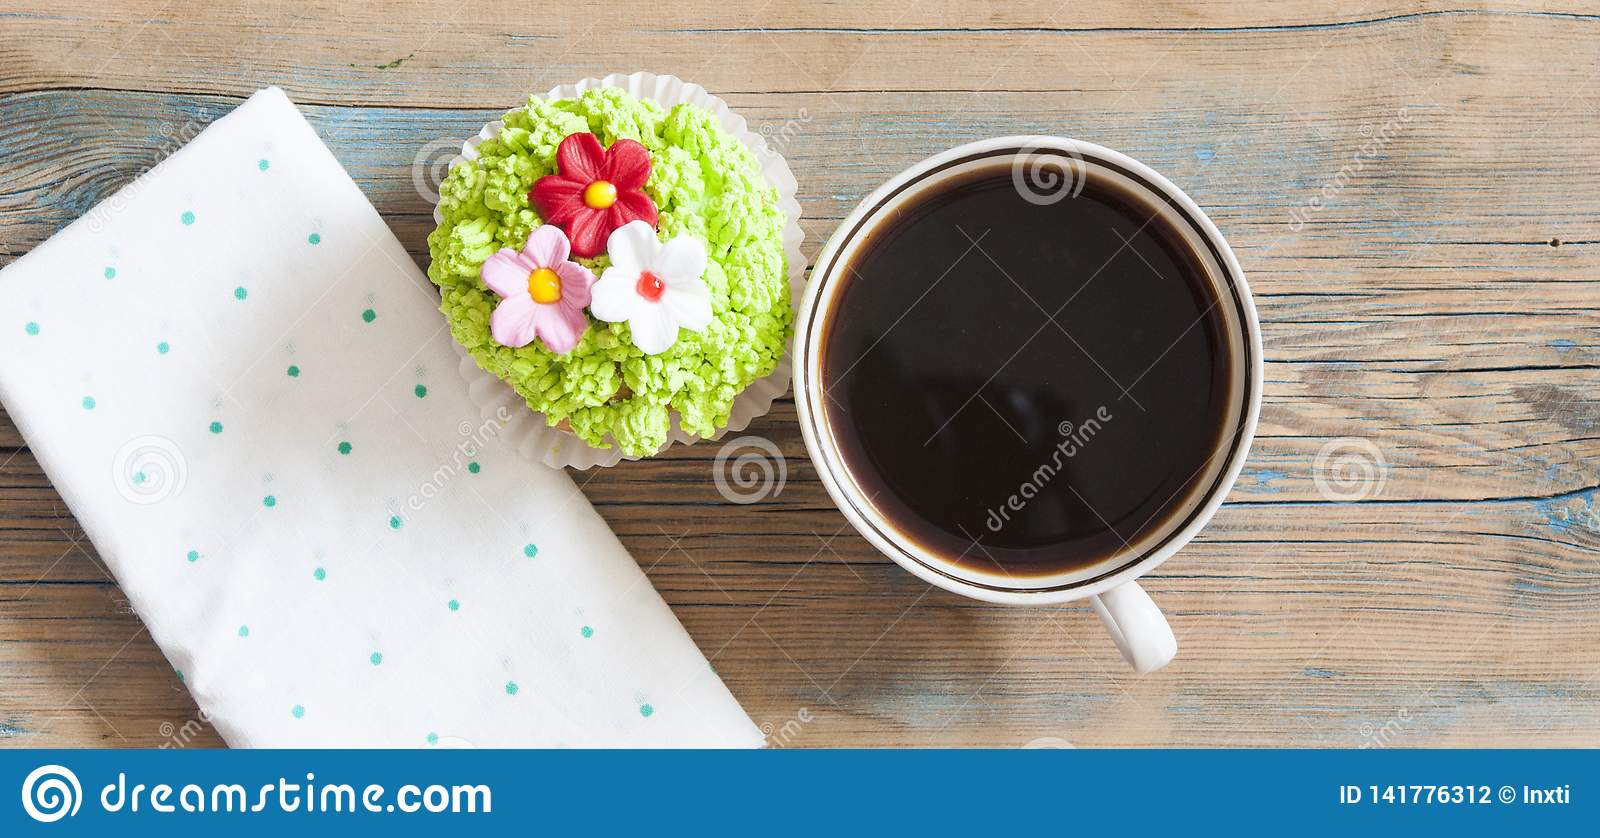 Flower spring cupcake with hot coffee cup on wooden table